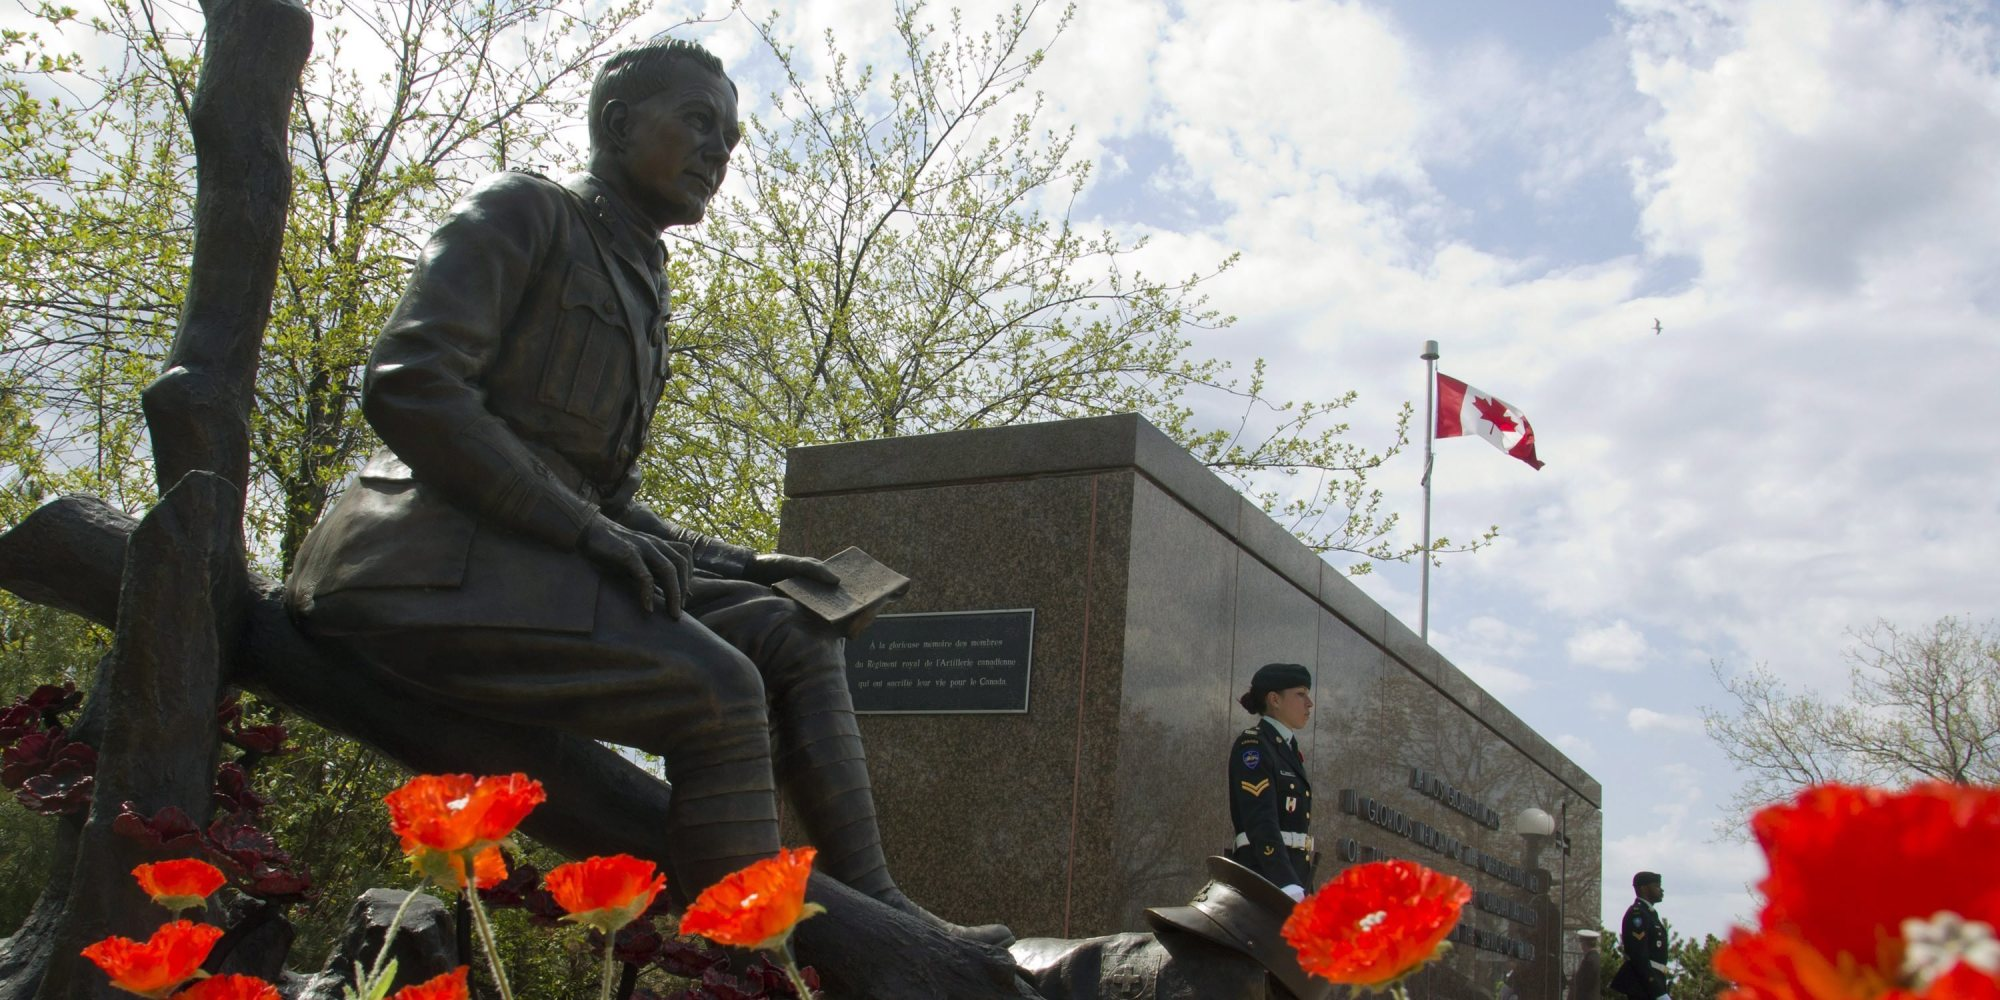 john mc crae essay In flanders fields a bloody war john mccrae like many others at his age, went to war not knowing what to expect the brutal fighting and deaths he.